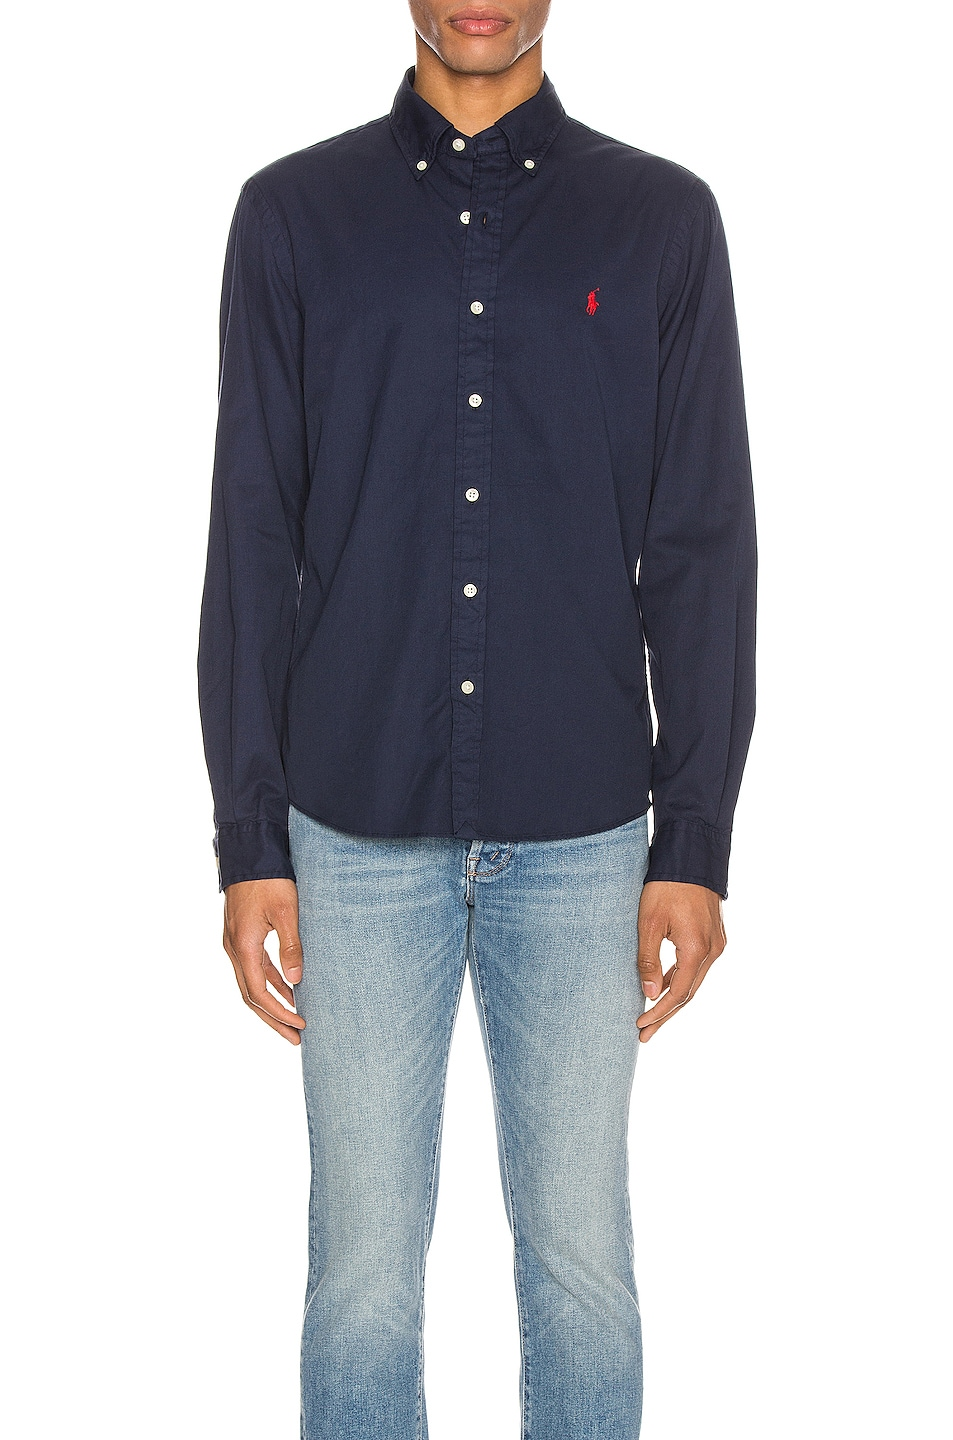 Image 1 of Polo Ralph Lauren GD Chino Long Sleeve Button Up Shirt in Cruise Navy